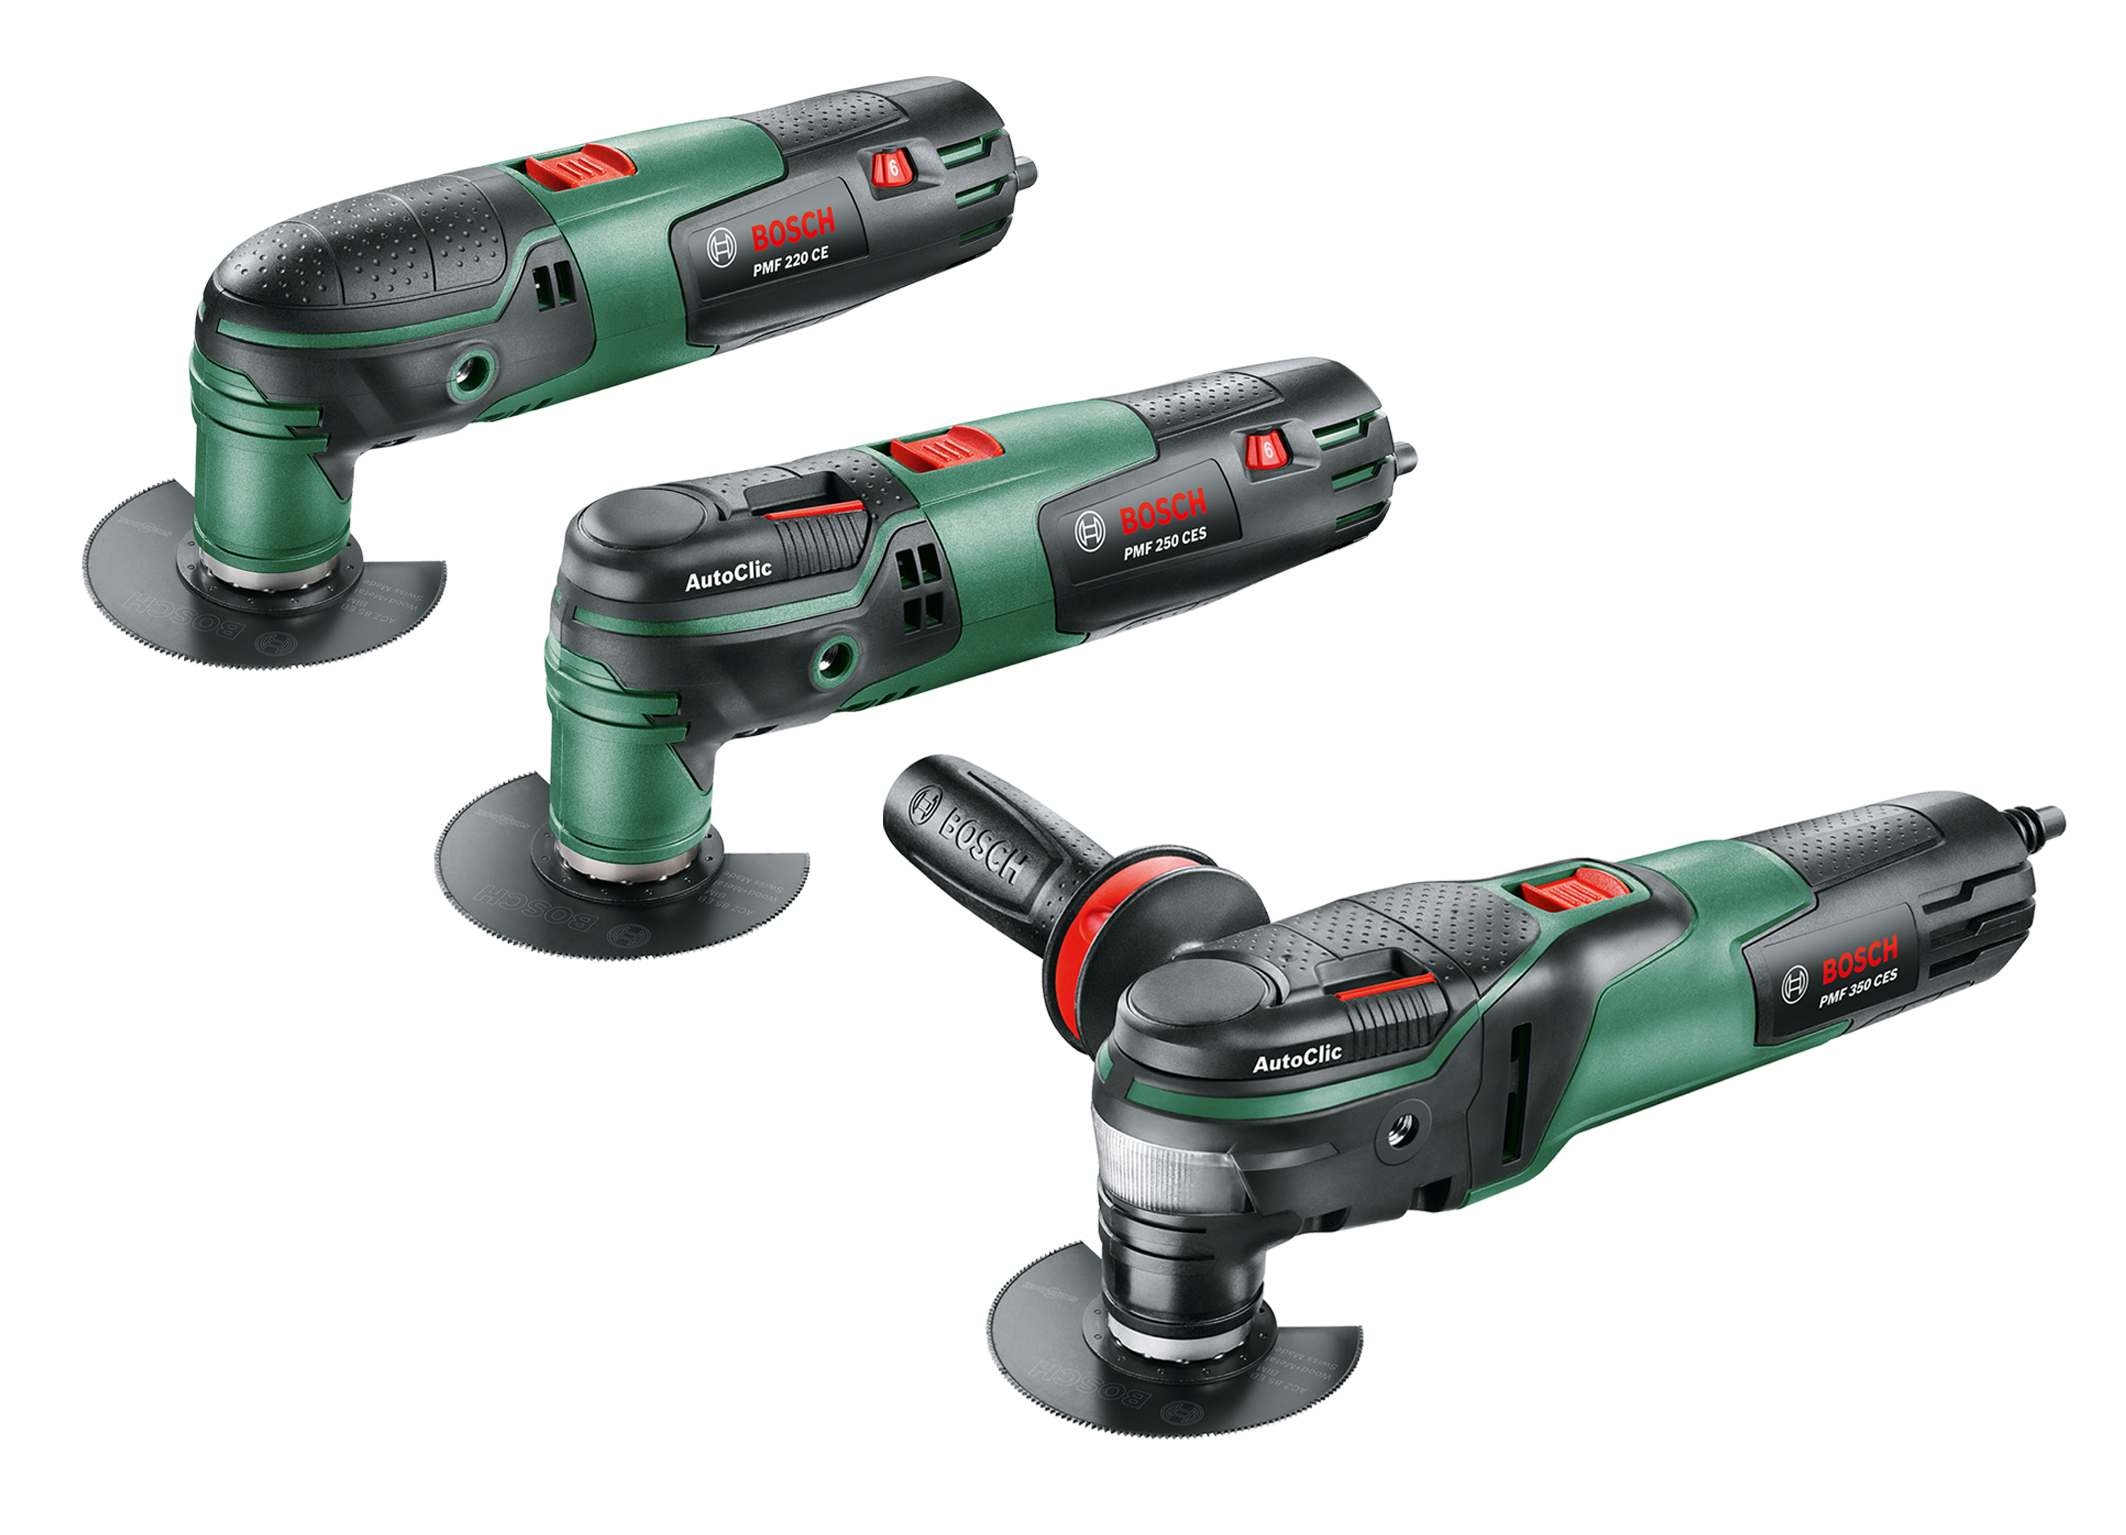 new multi-tools by bosch - bosch media service